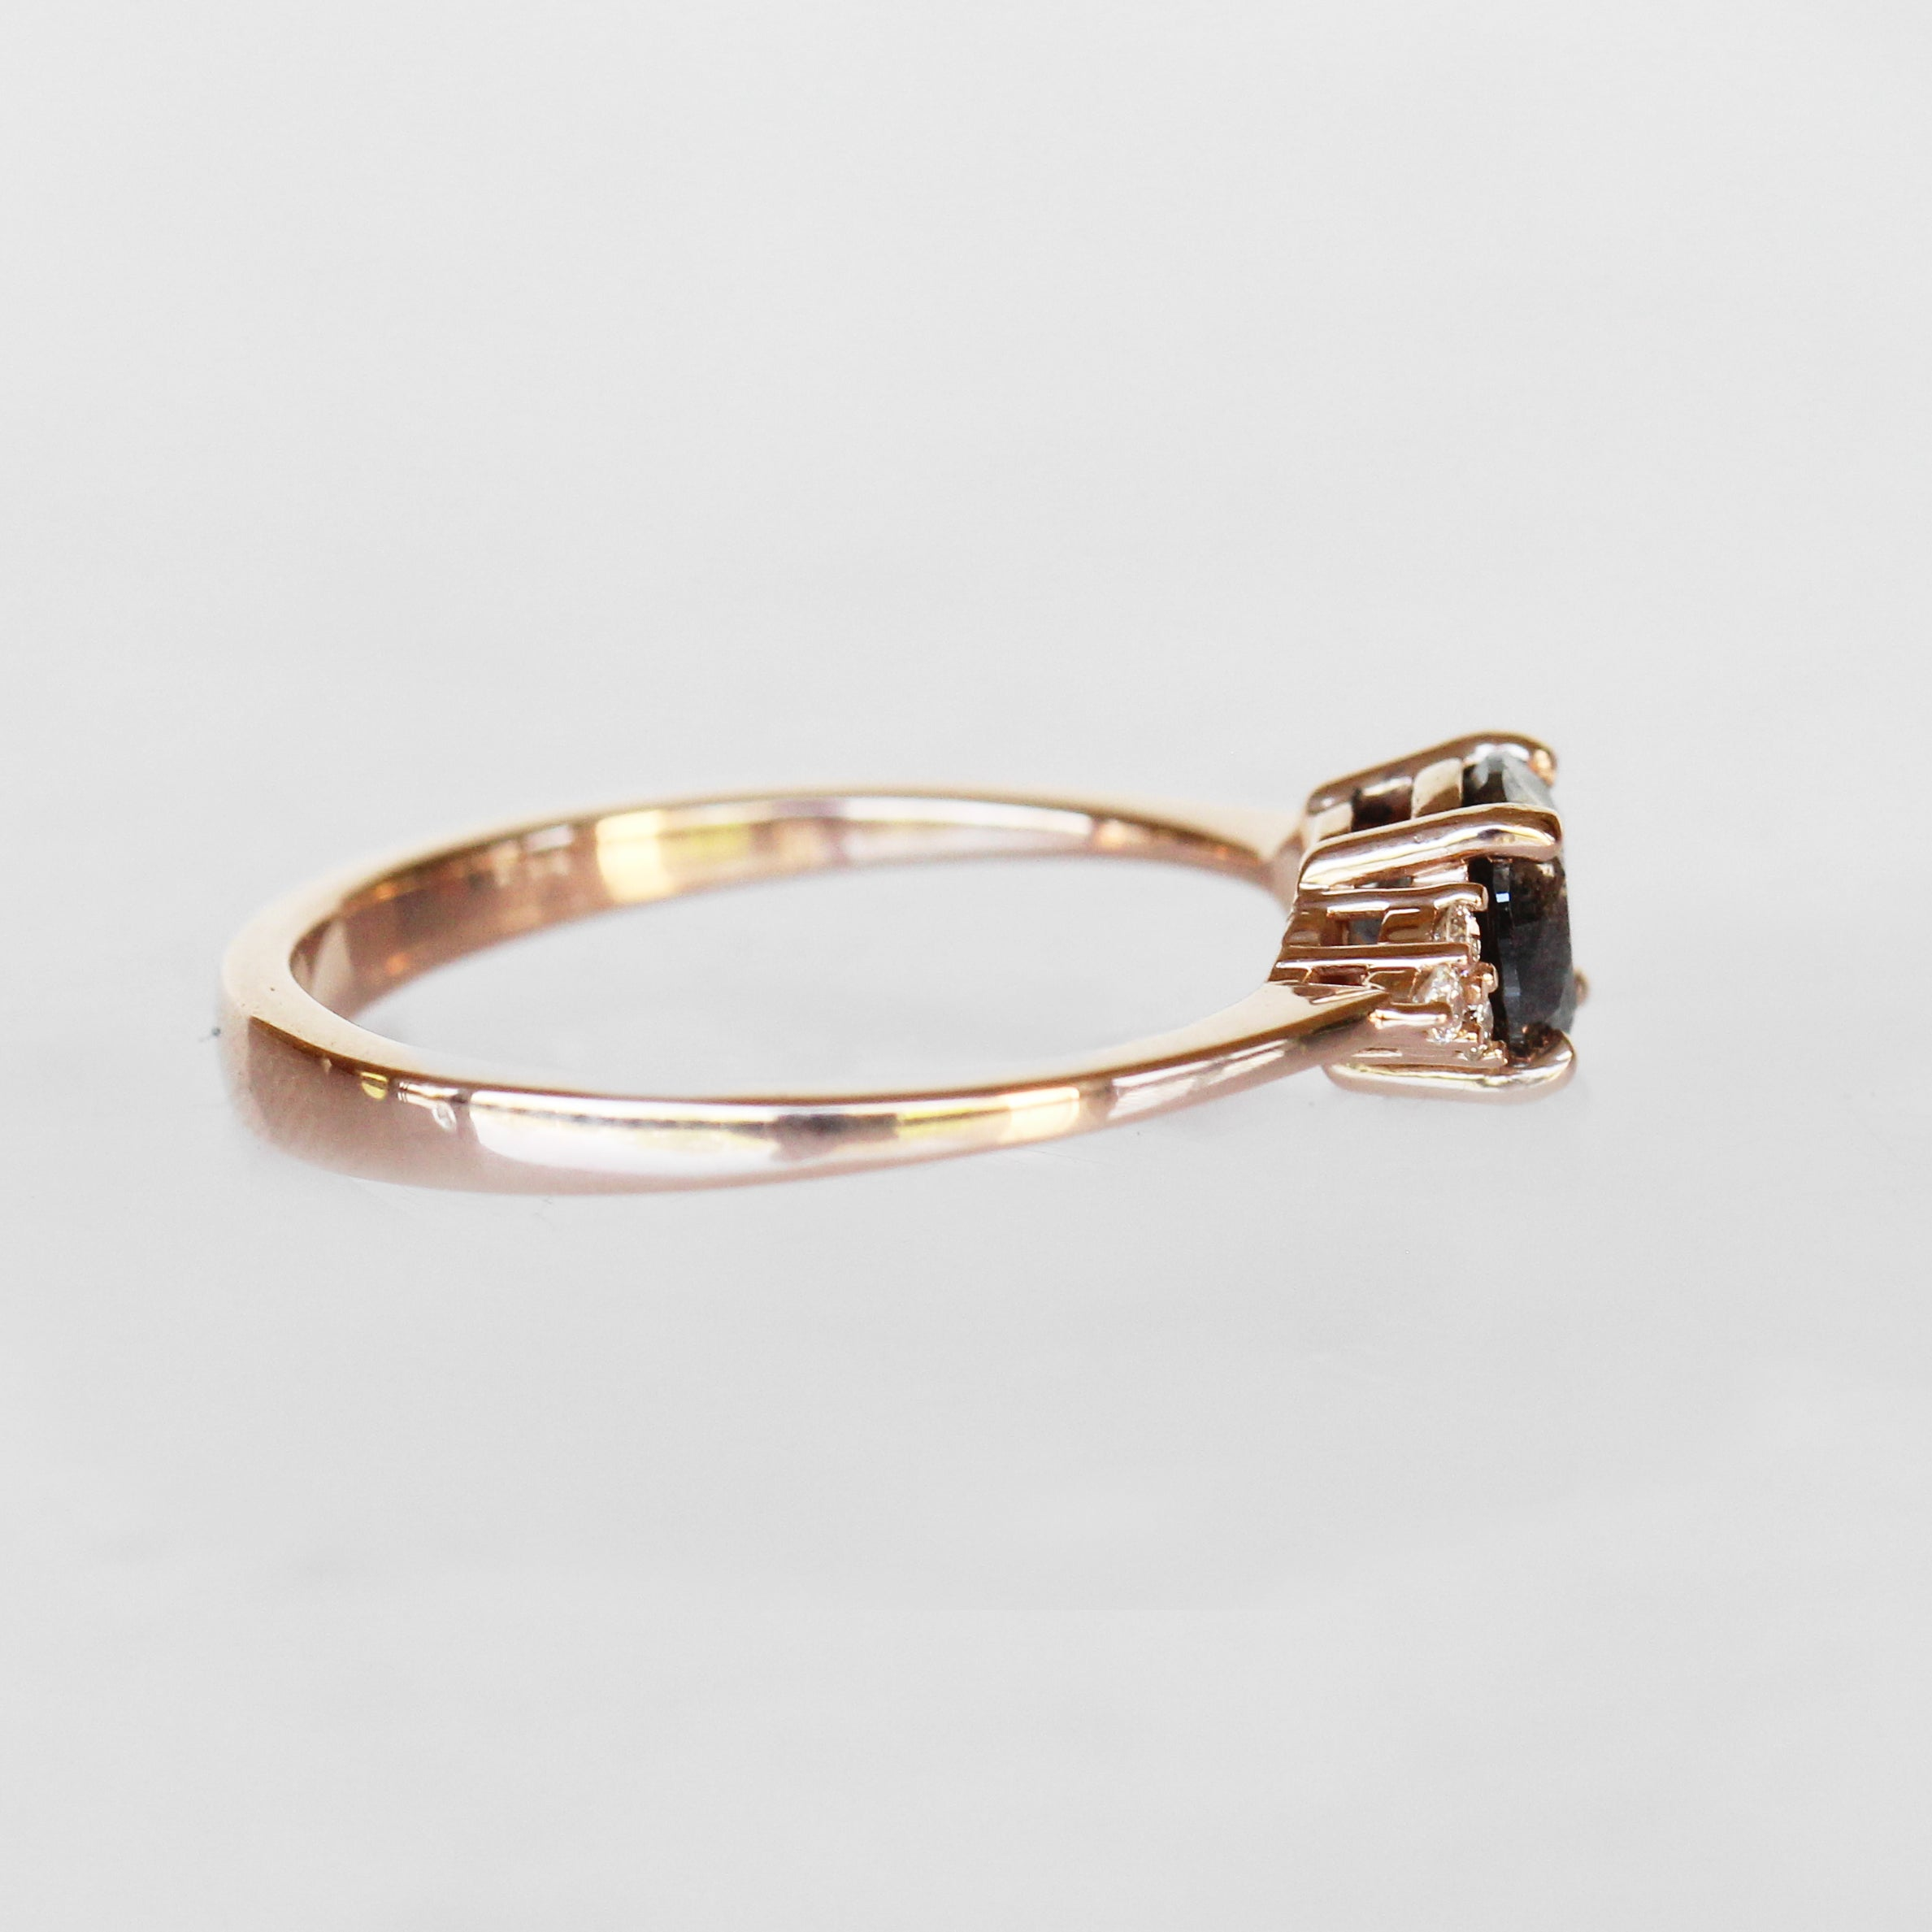 Imogene Ring with a Celestial Diamond ® in 14k Rose Gold - Ready to Size and Ship